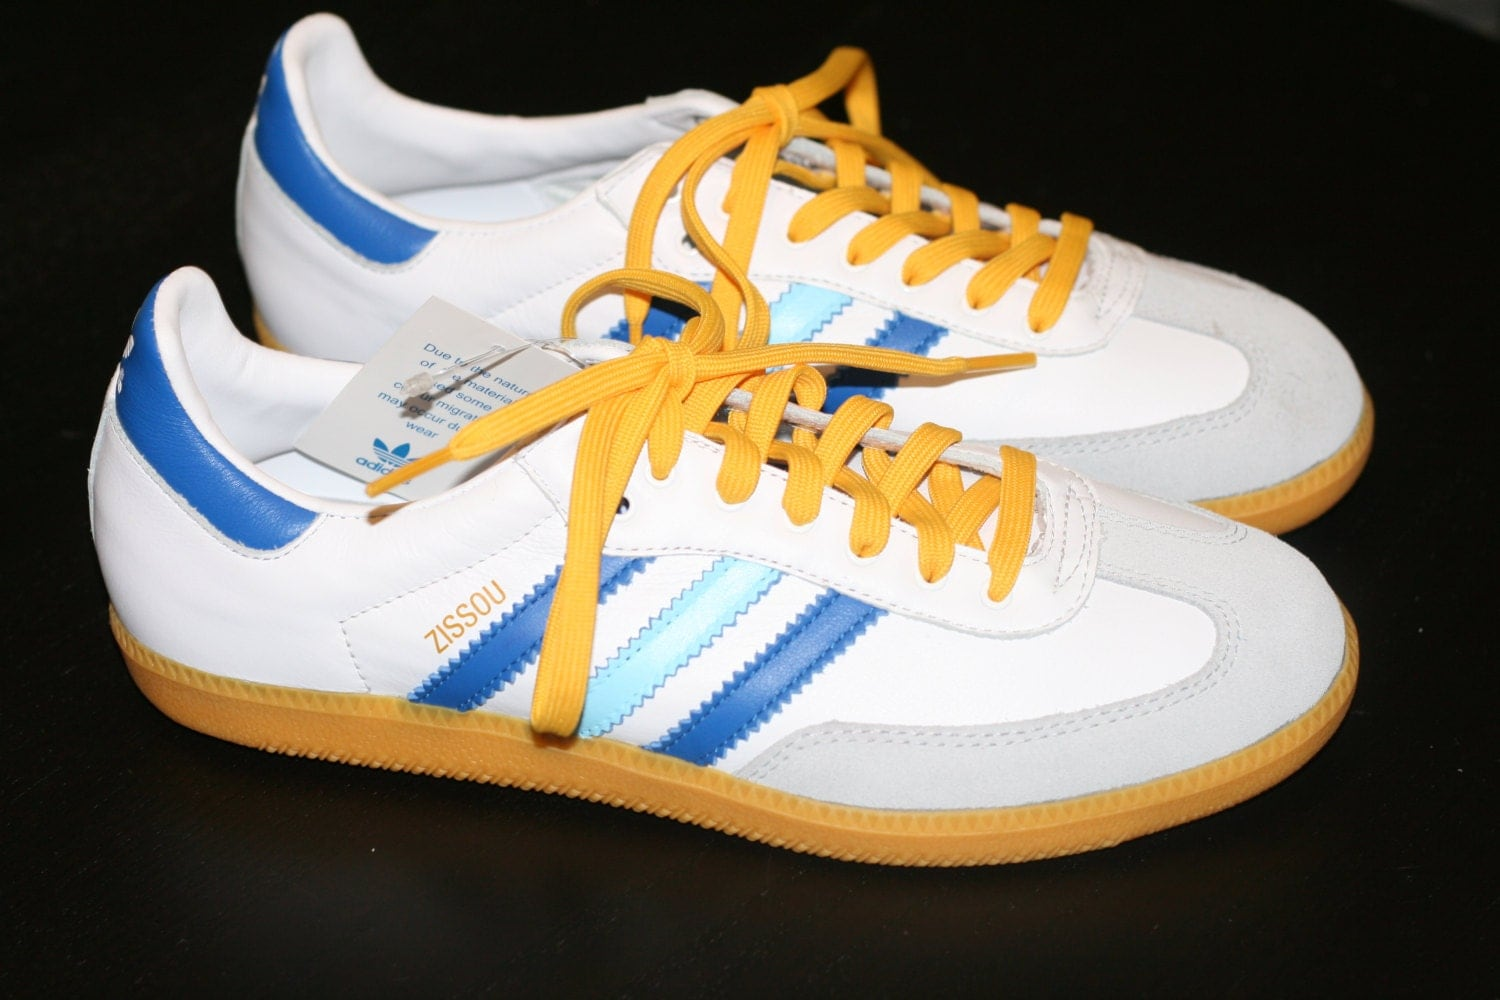 Premium Team Zissou Women S Adidas The Life Aquatic With